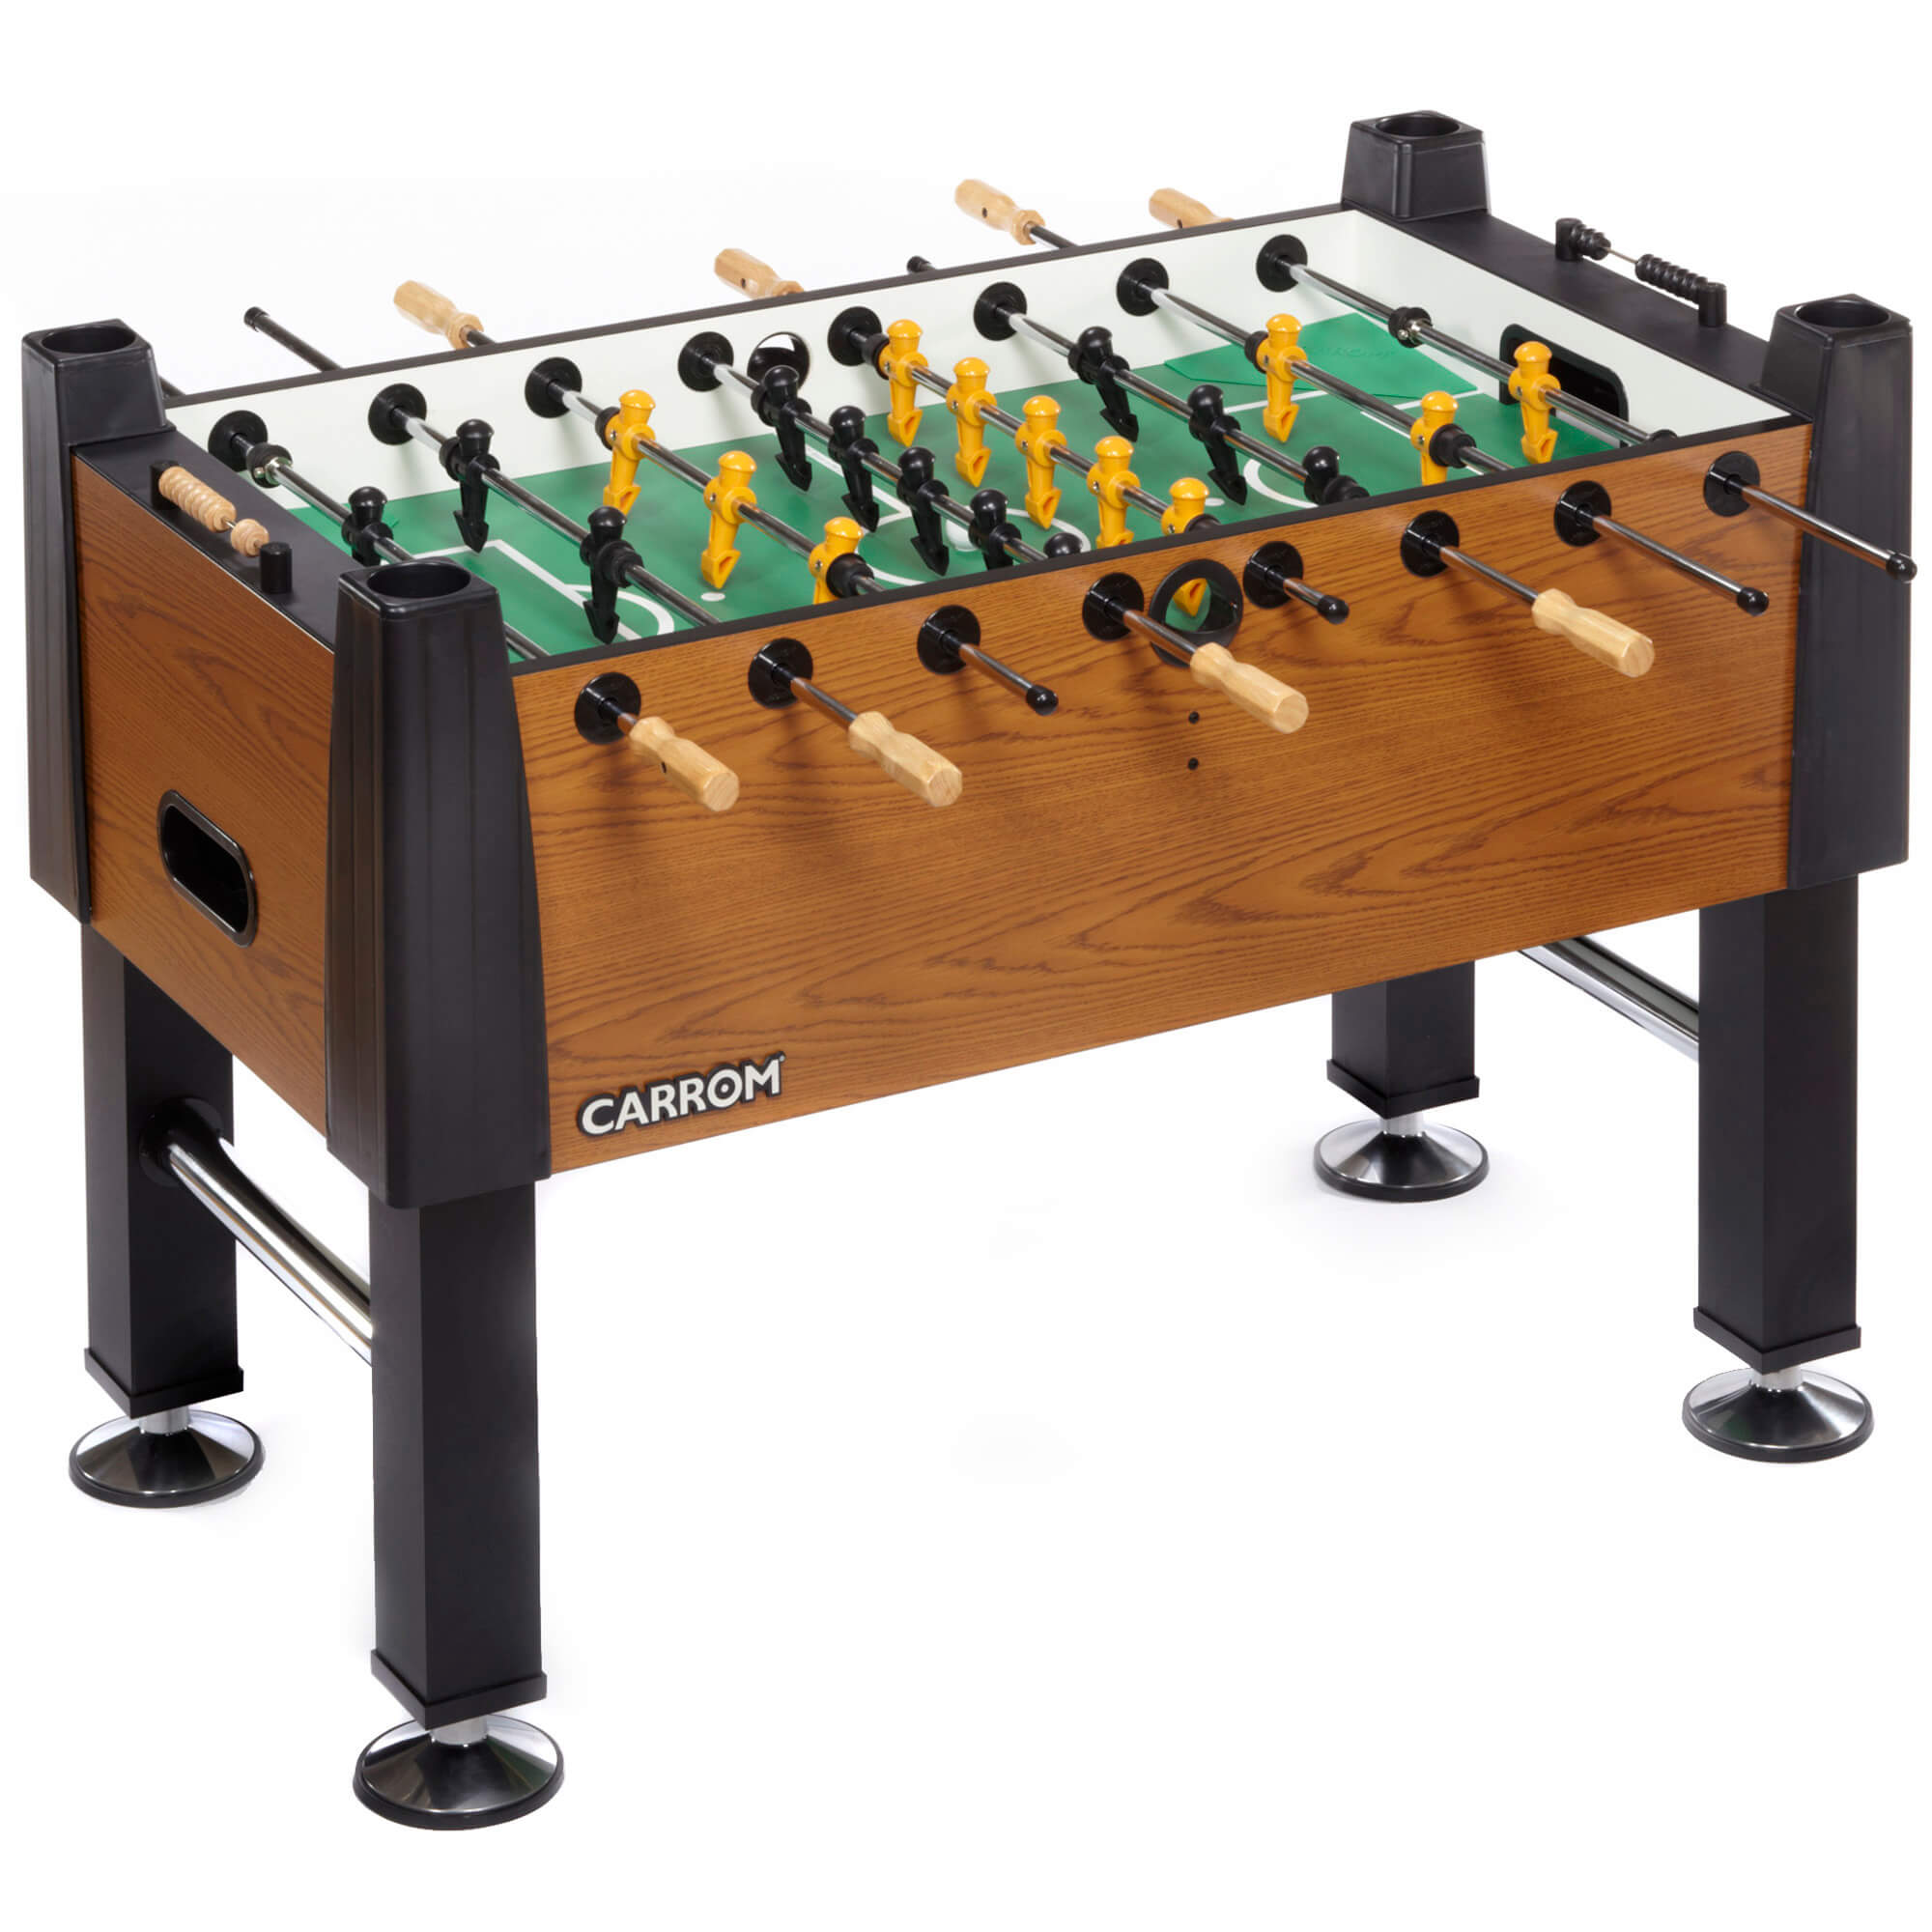 Carrom Signature Foosball Table Carrom 525 Signature